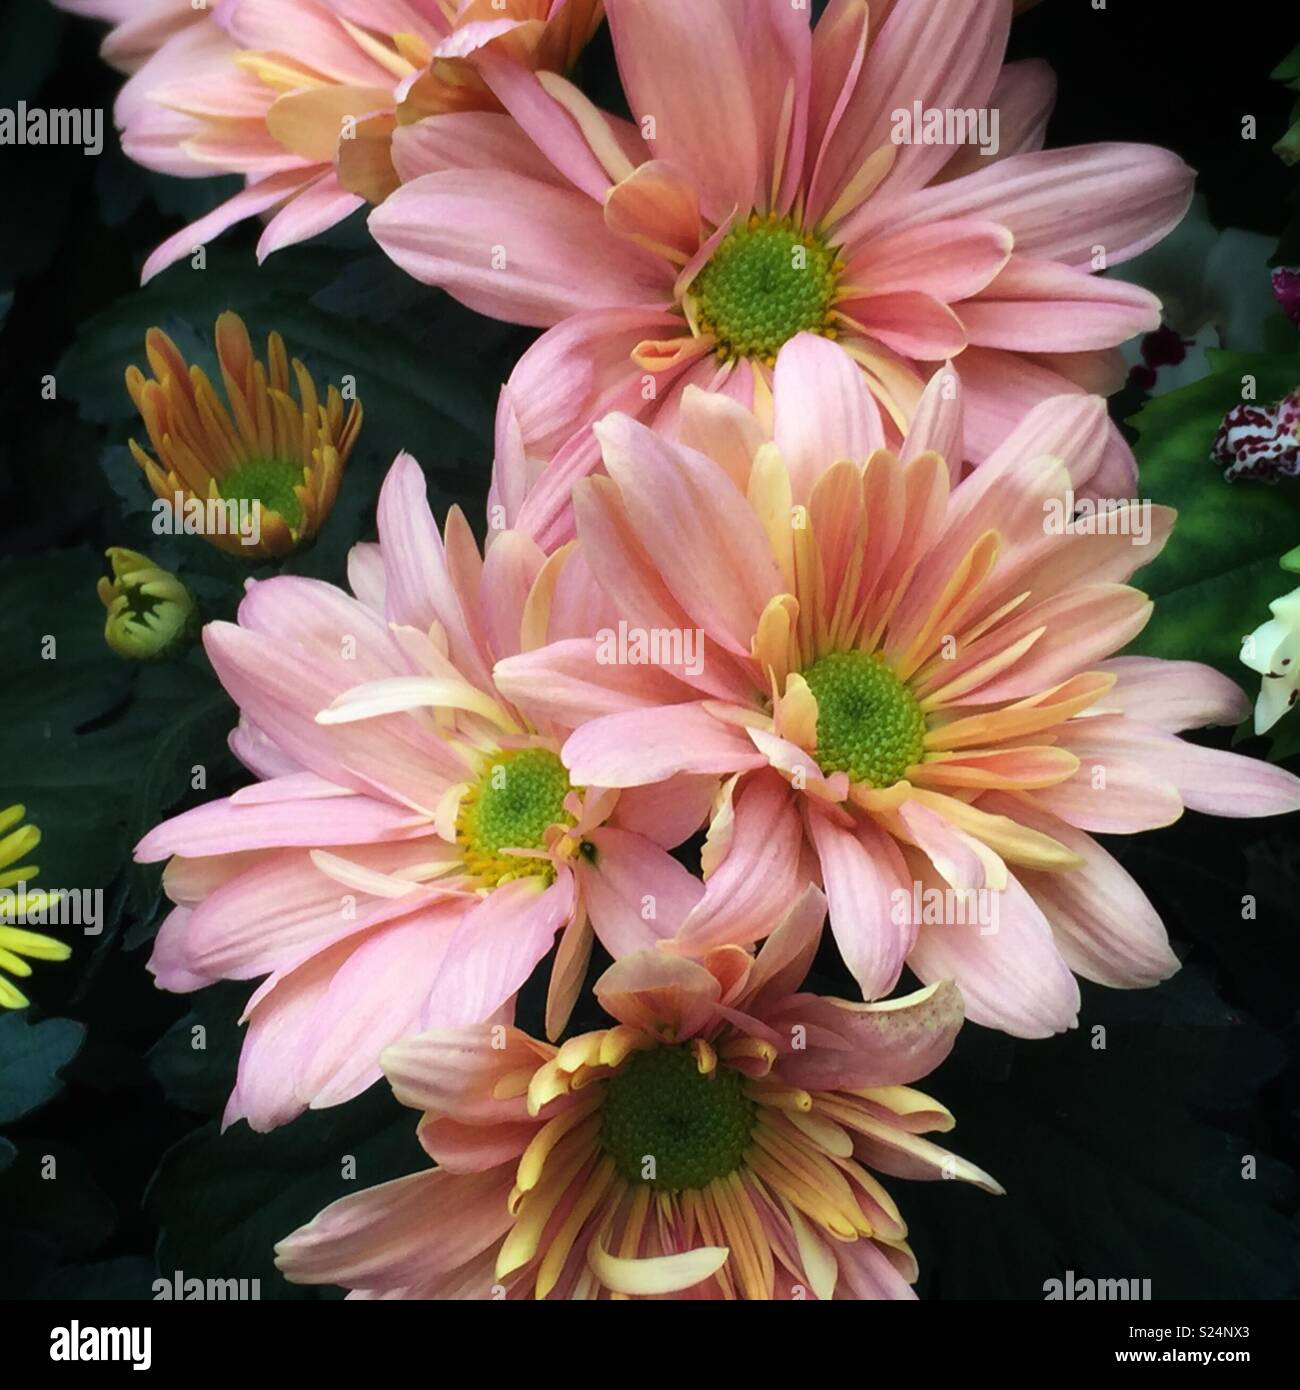 Gentle cluster of white , pink and yellow chrysanthemums - Stock Image